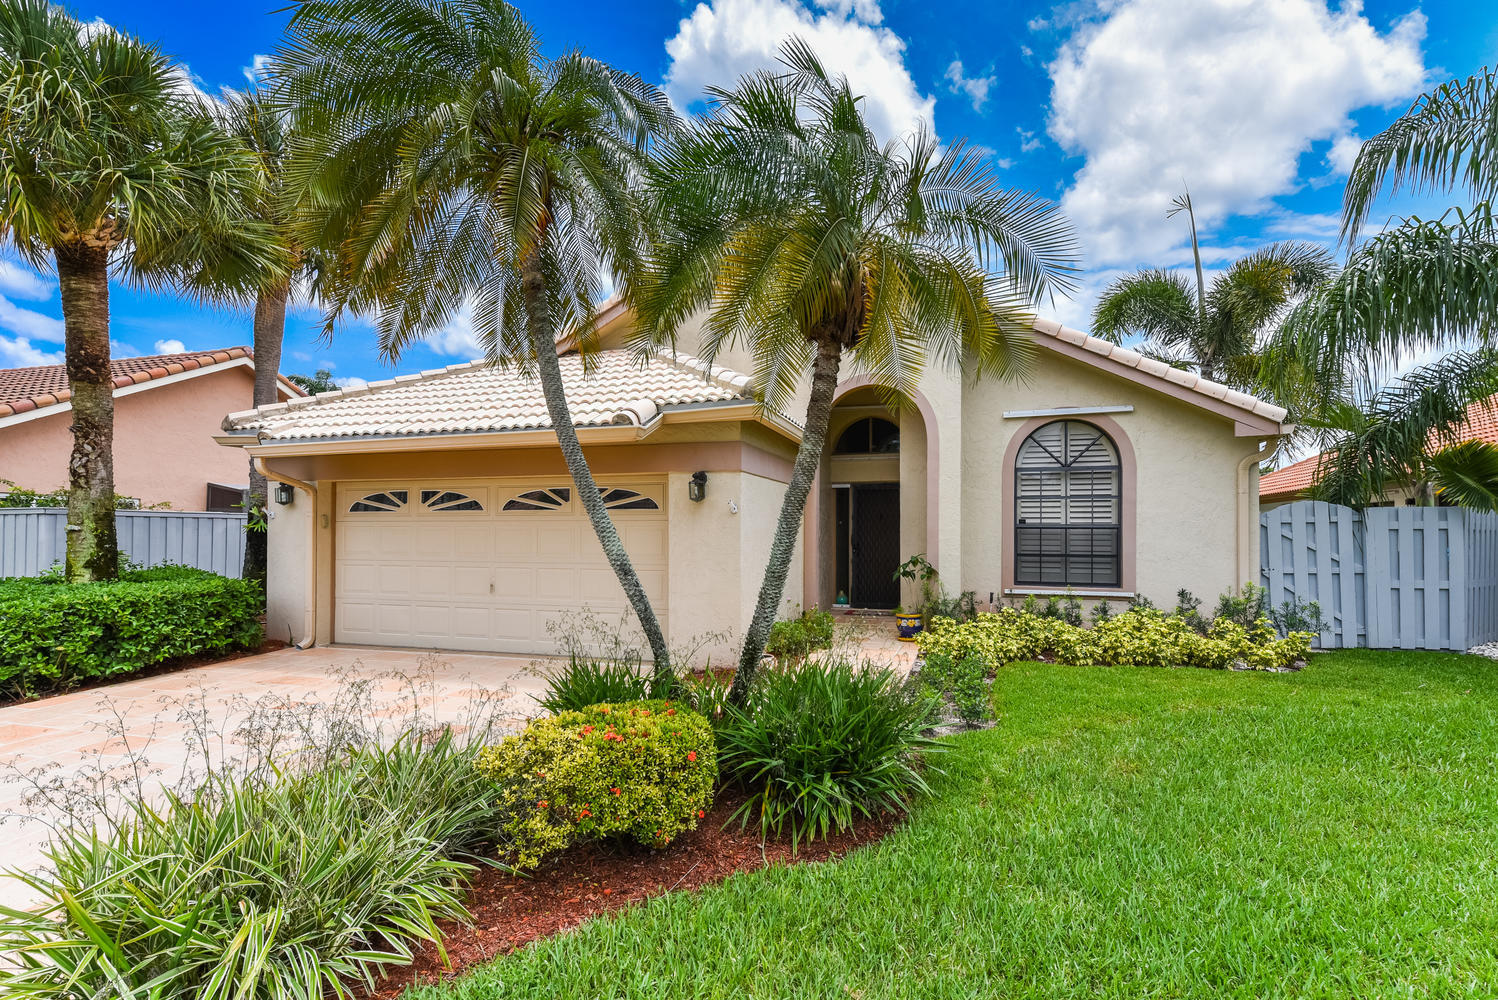 Home for sale in EXECUTIVE ESTATES, CITRUS GLEN Boynton Beach Florida